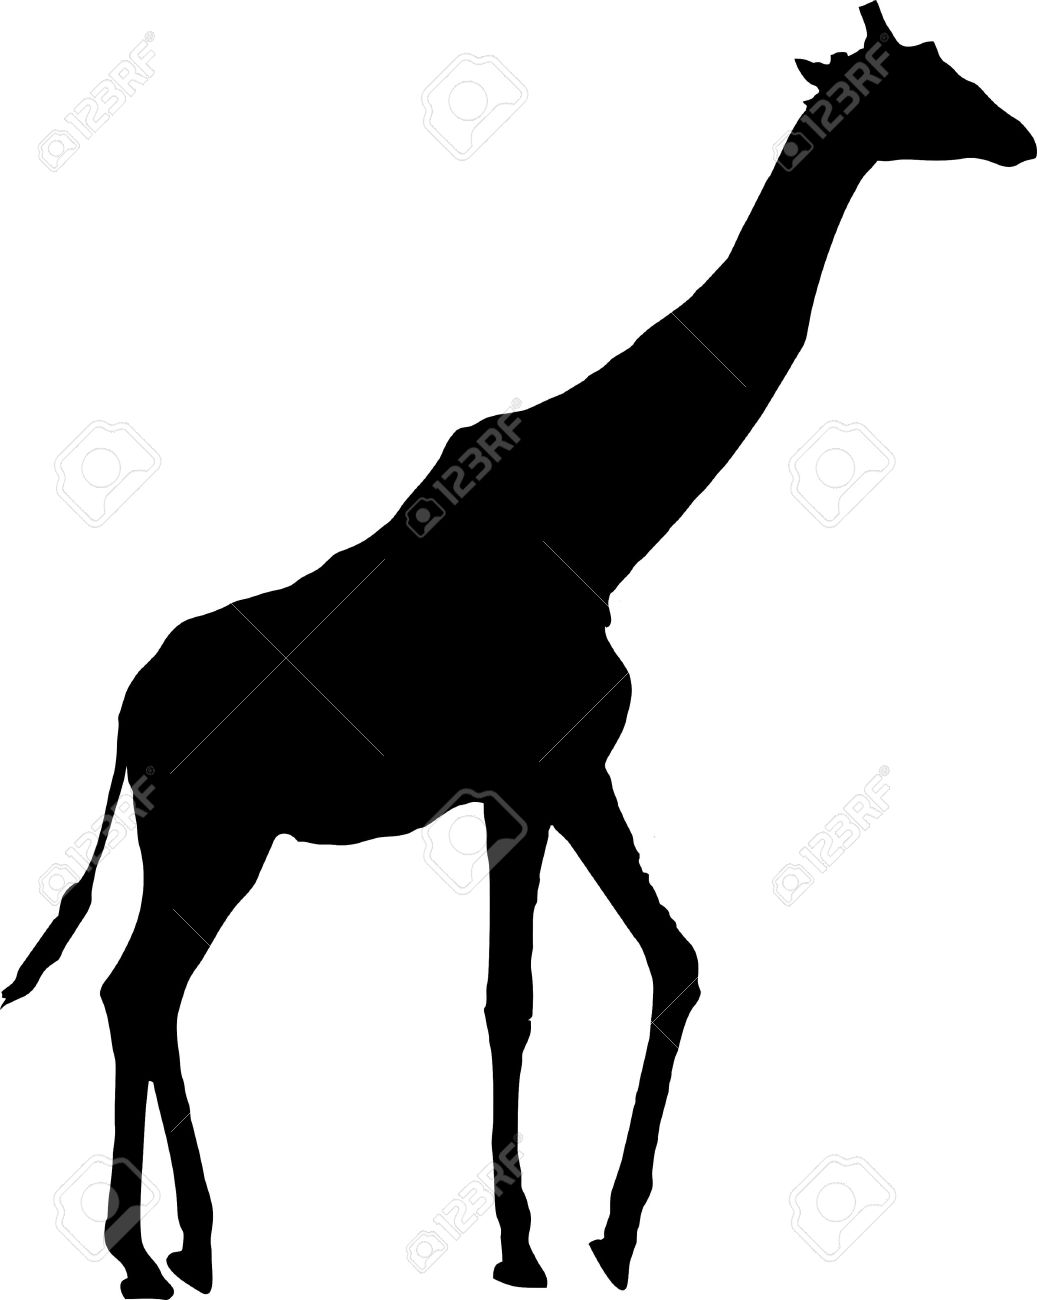 Giraffe Silhouette Isolated Vector Illus-Giraffe Silhouette Isolated Vector Illustration Royalty Free. Print Save this clip art-13